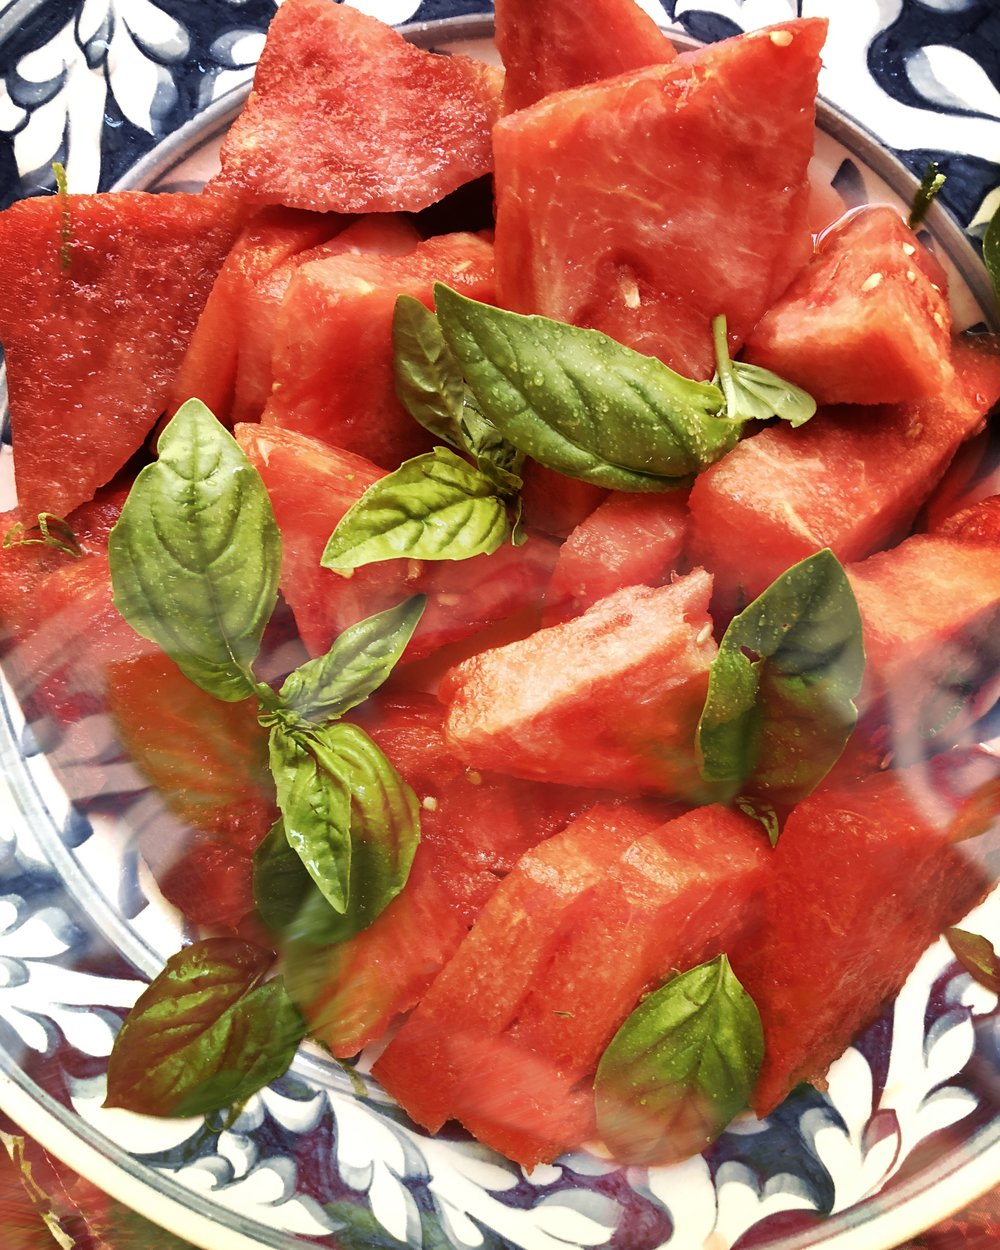 Chilled Watermelon Salad with Lime & Basil - Yield: 8 Servings